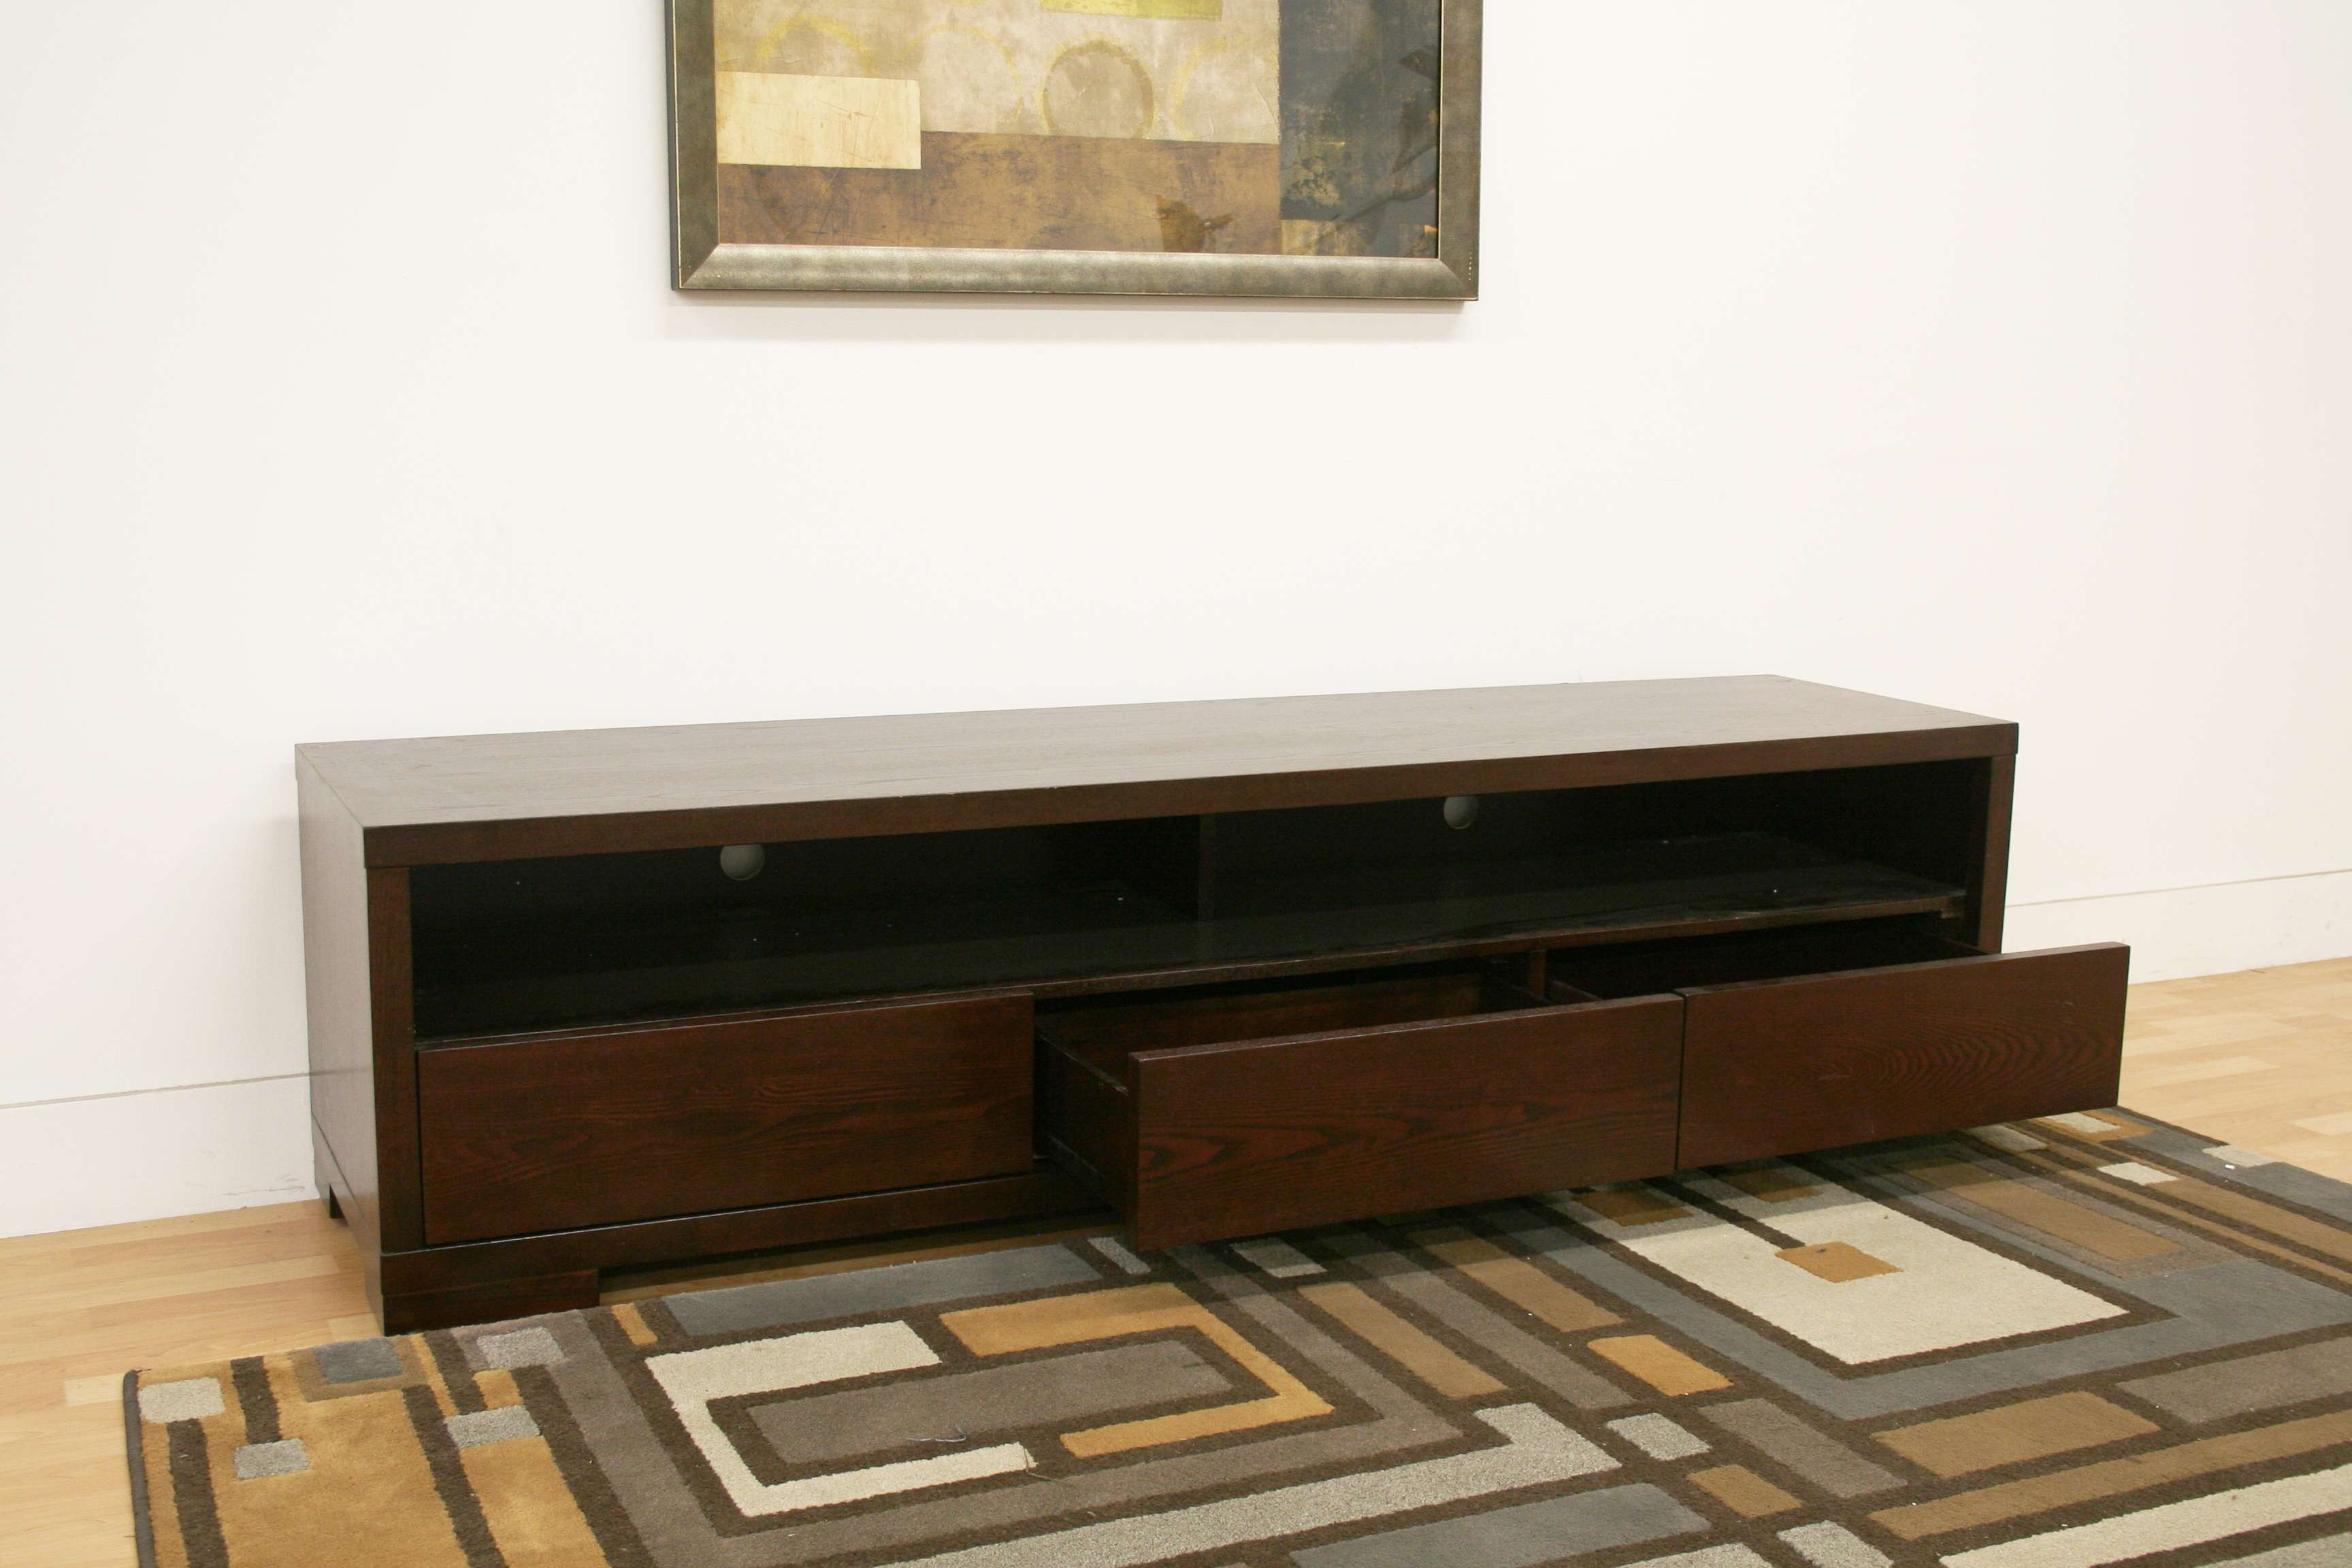 Tv Stand : Modern Media Console Designs Showcasing This Styles Within Modern Low Profile Tv Stands (View 7 of 20)